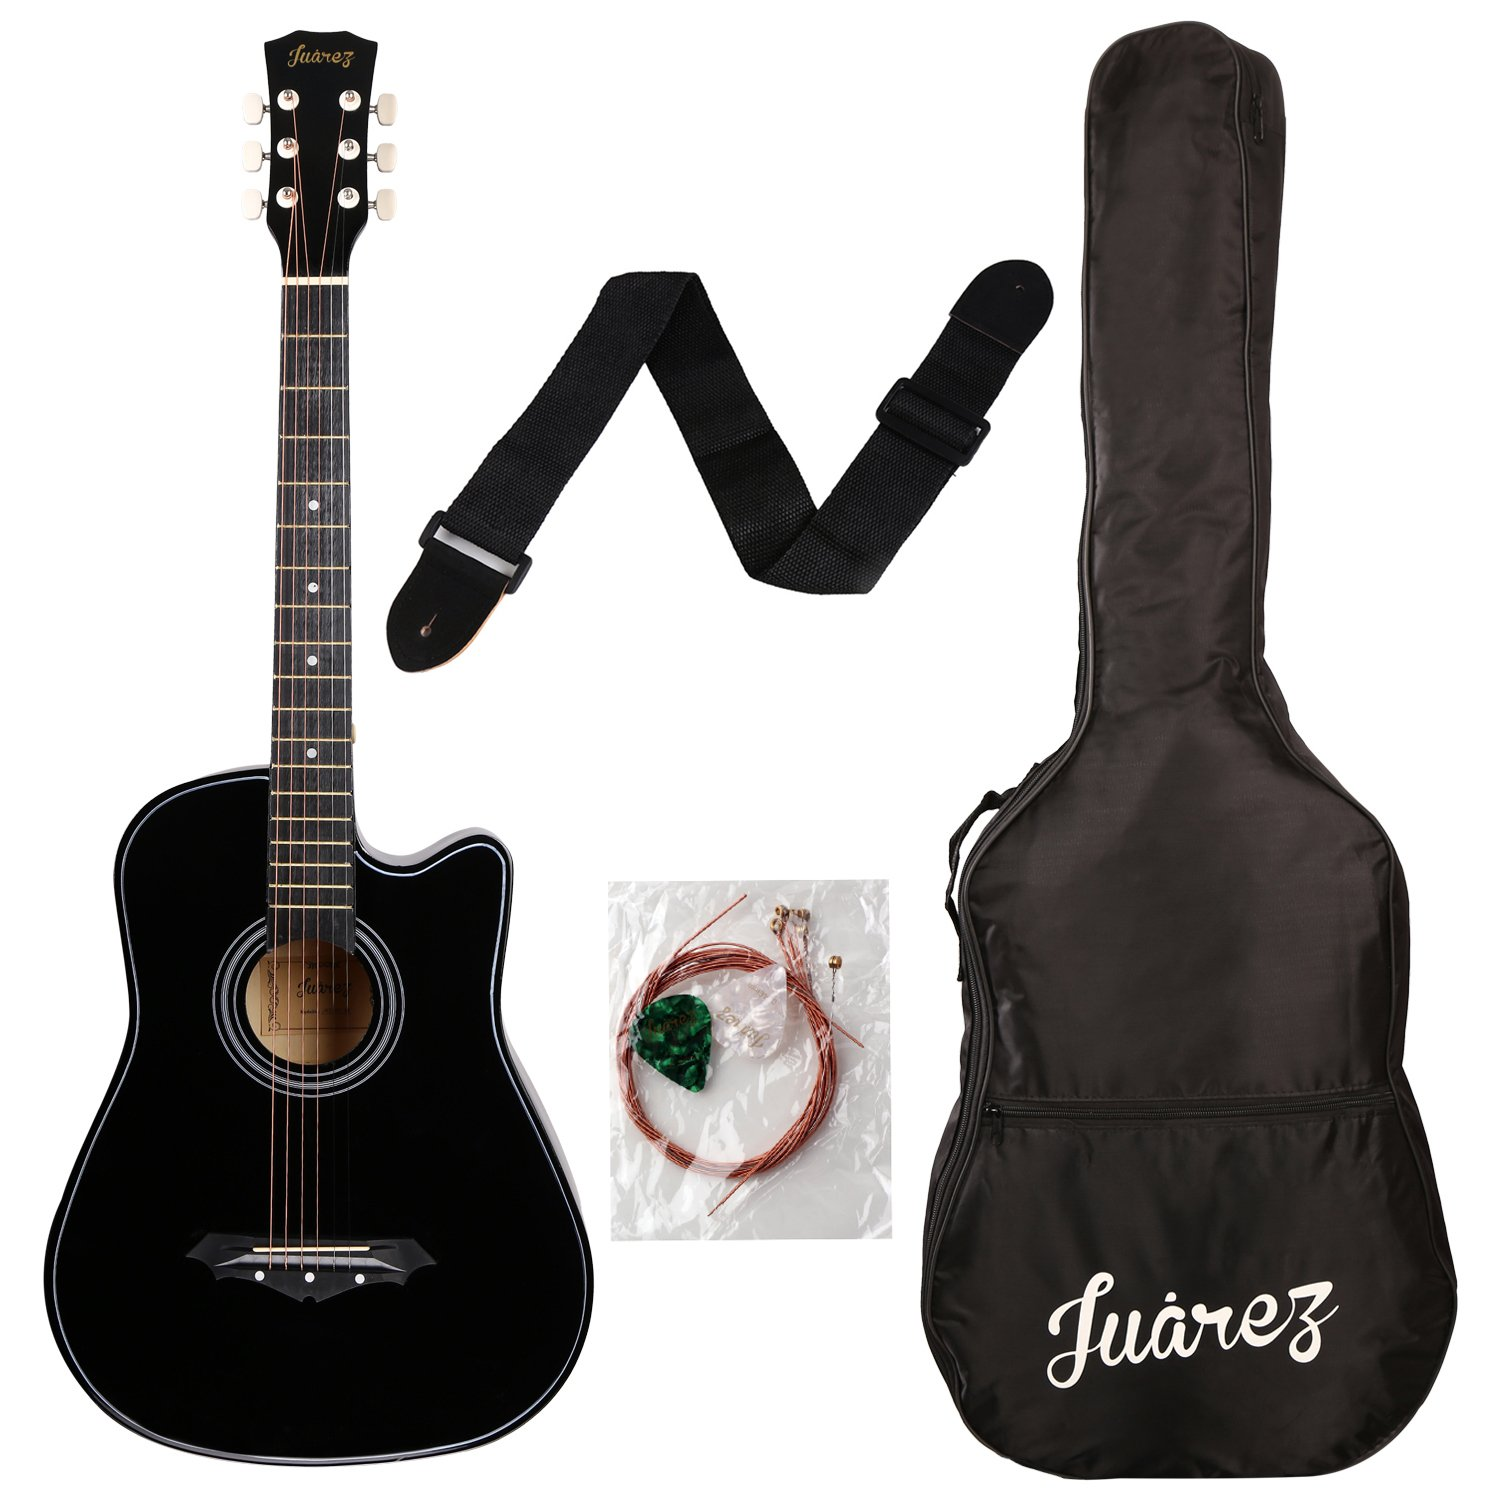 Juarez Acoustic Guitar, 38 Inch Cutaway, 038C With Bag, Strings, Pick And Strap, Black product image